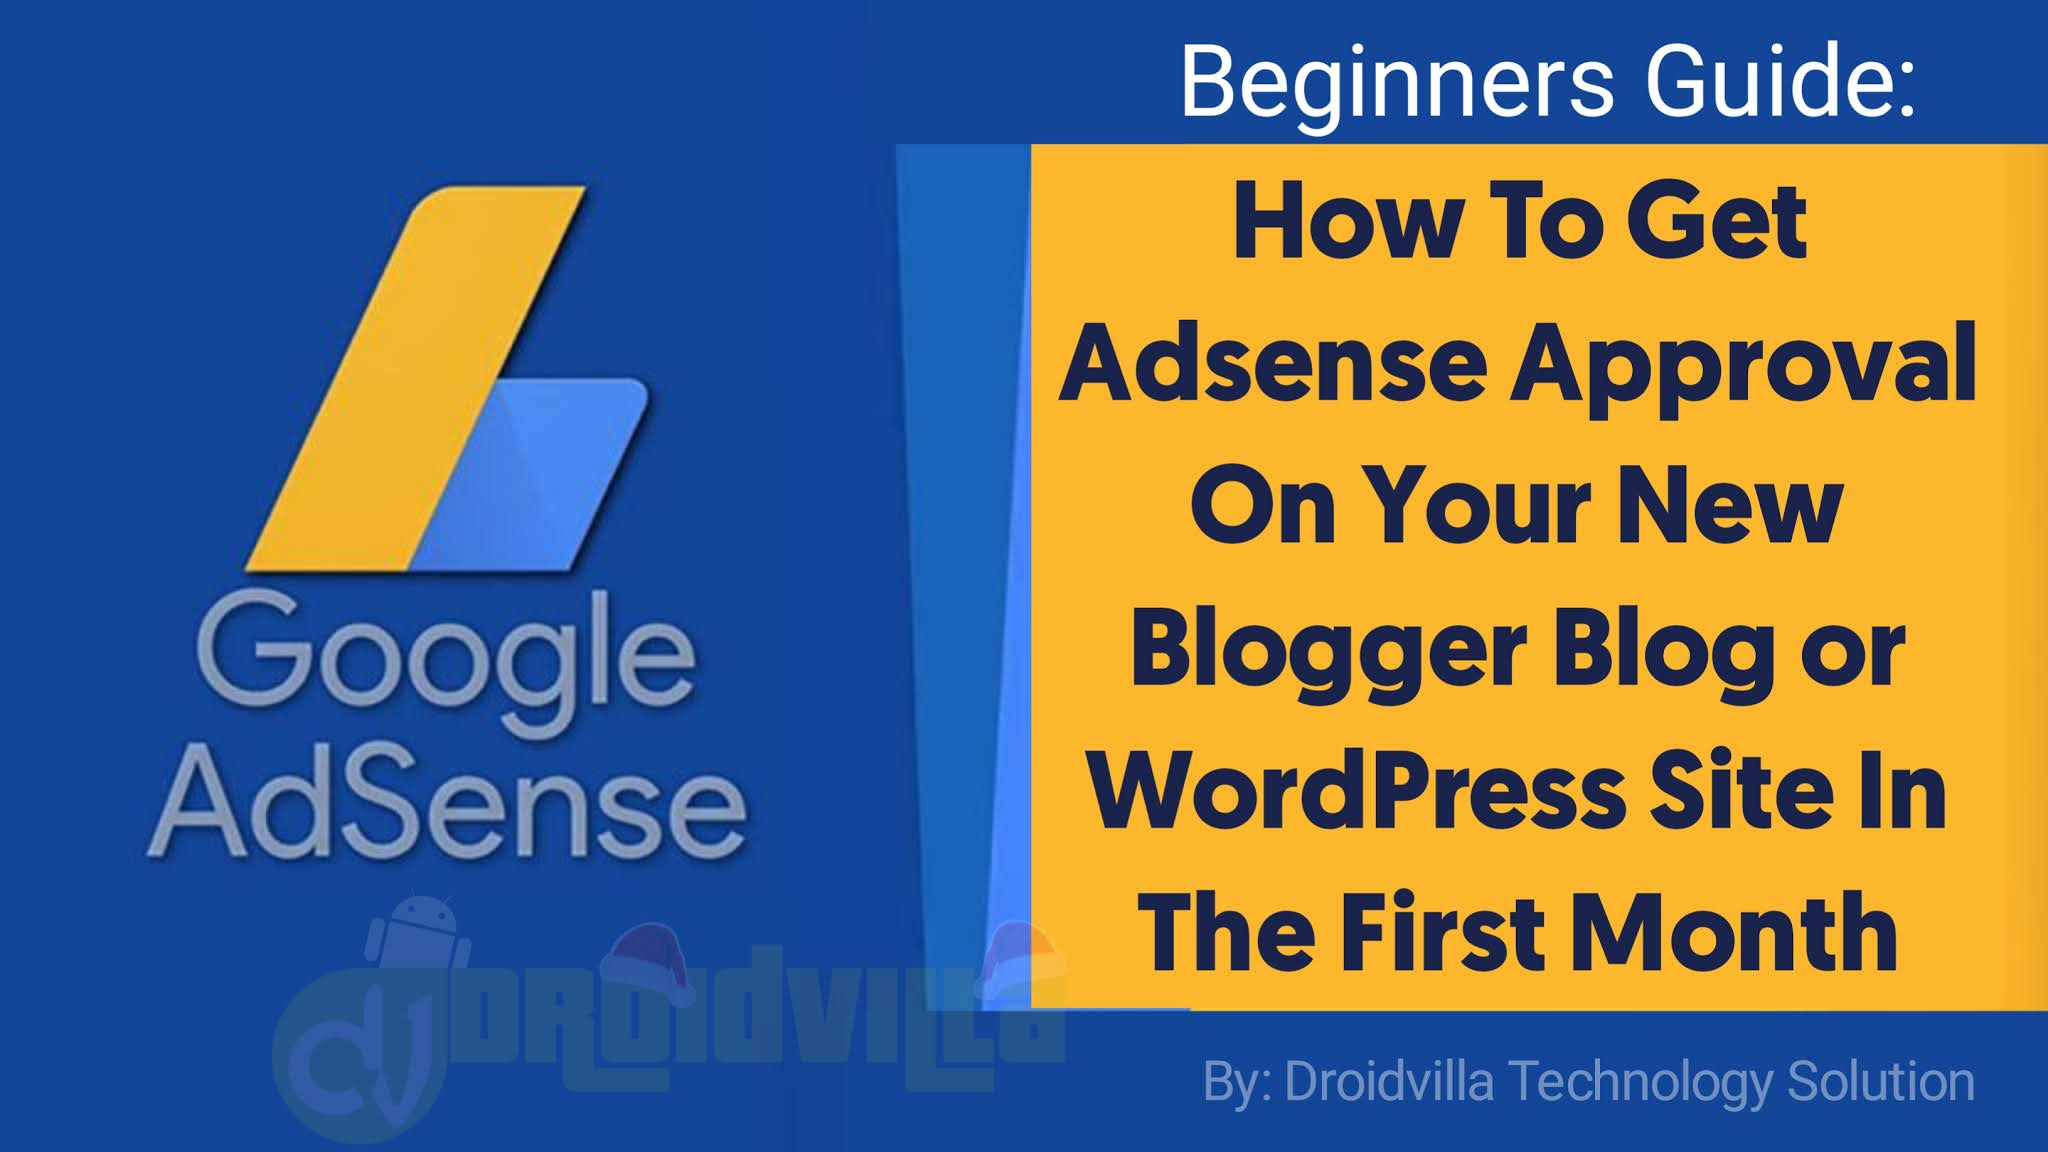 How To Get Adsense Approval On Your New Blogger Blog or WordPress Site In The First Month